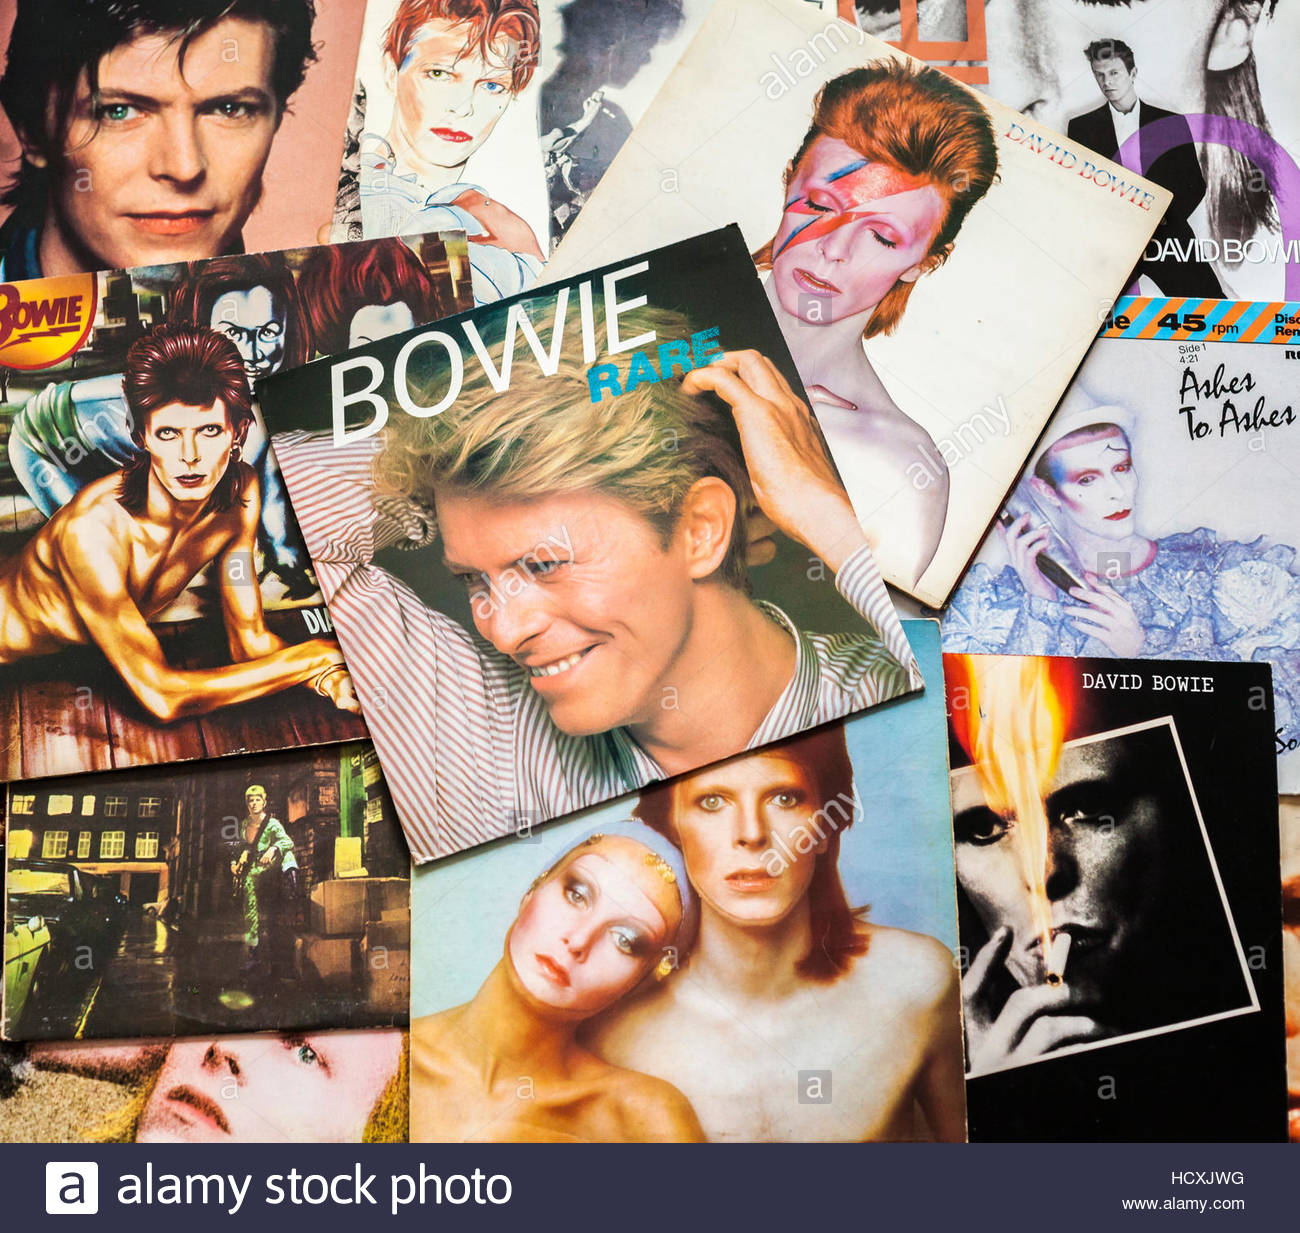 A selection of assorted David Bowie album covers, a tribute to this